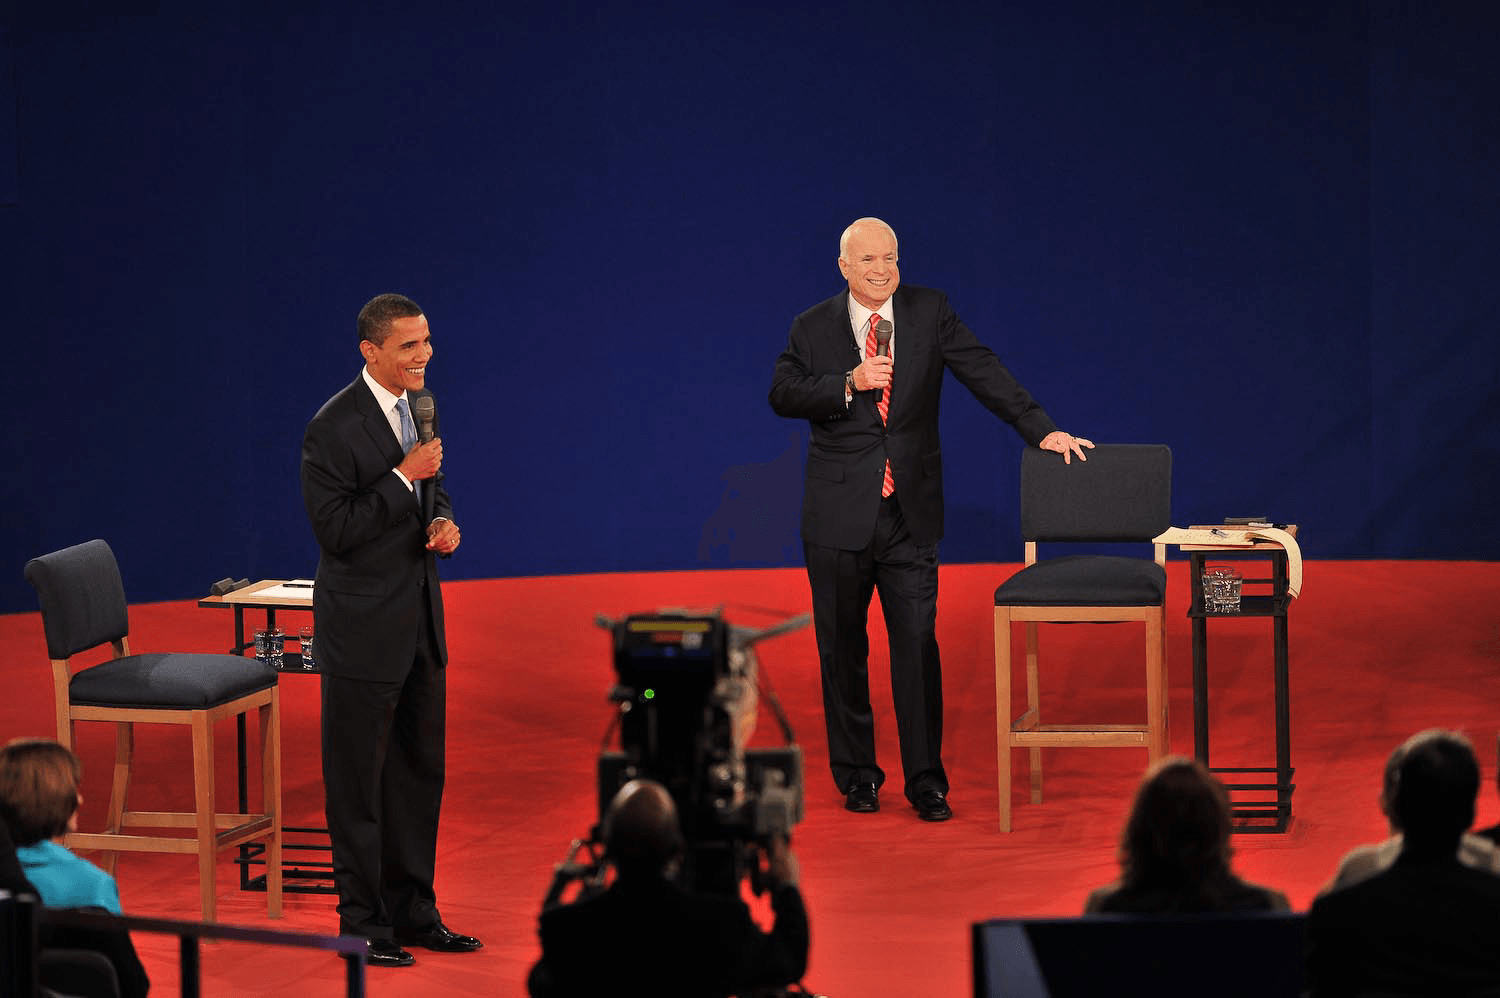 Candidates Barack Obama and John McCain square off during Belmont's 2008 town hall presidential debate